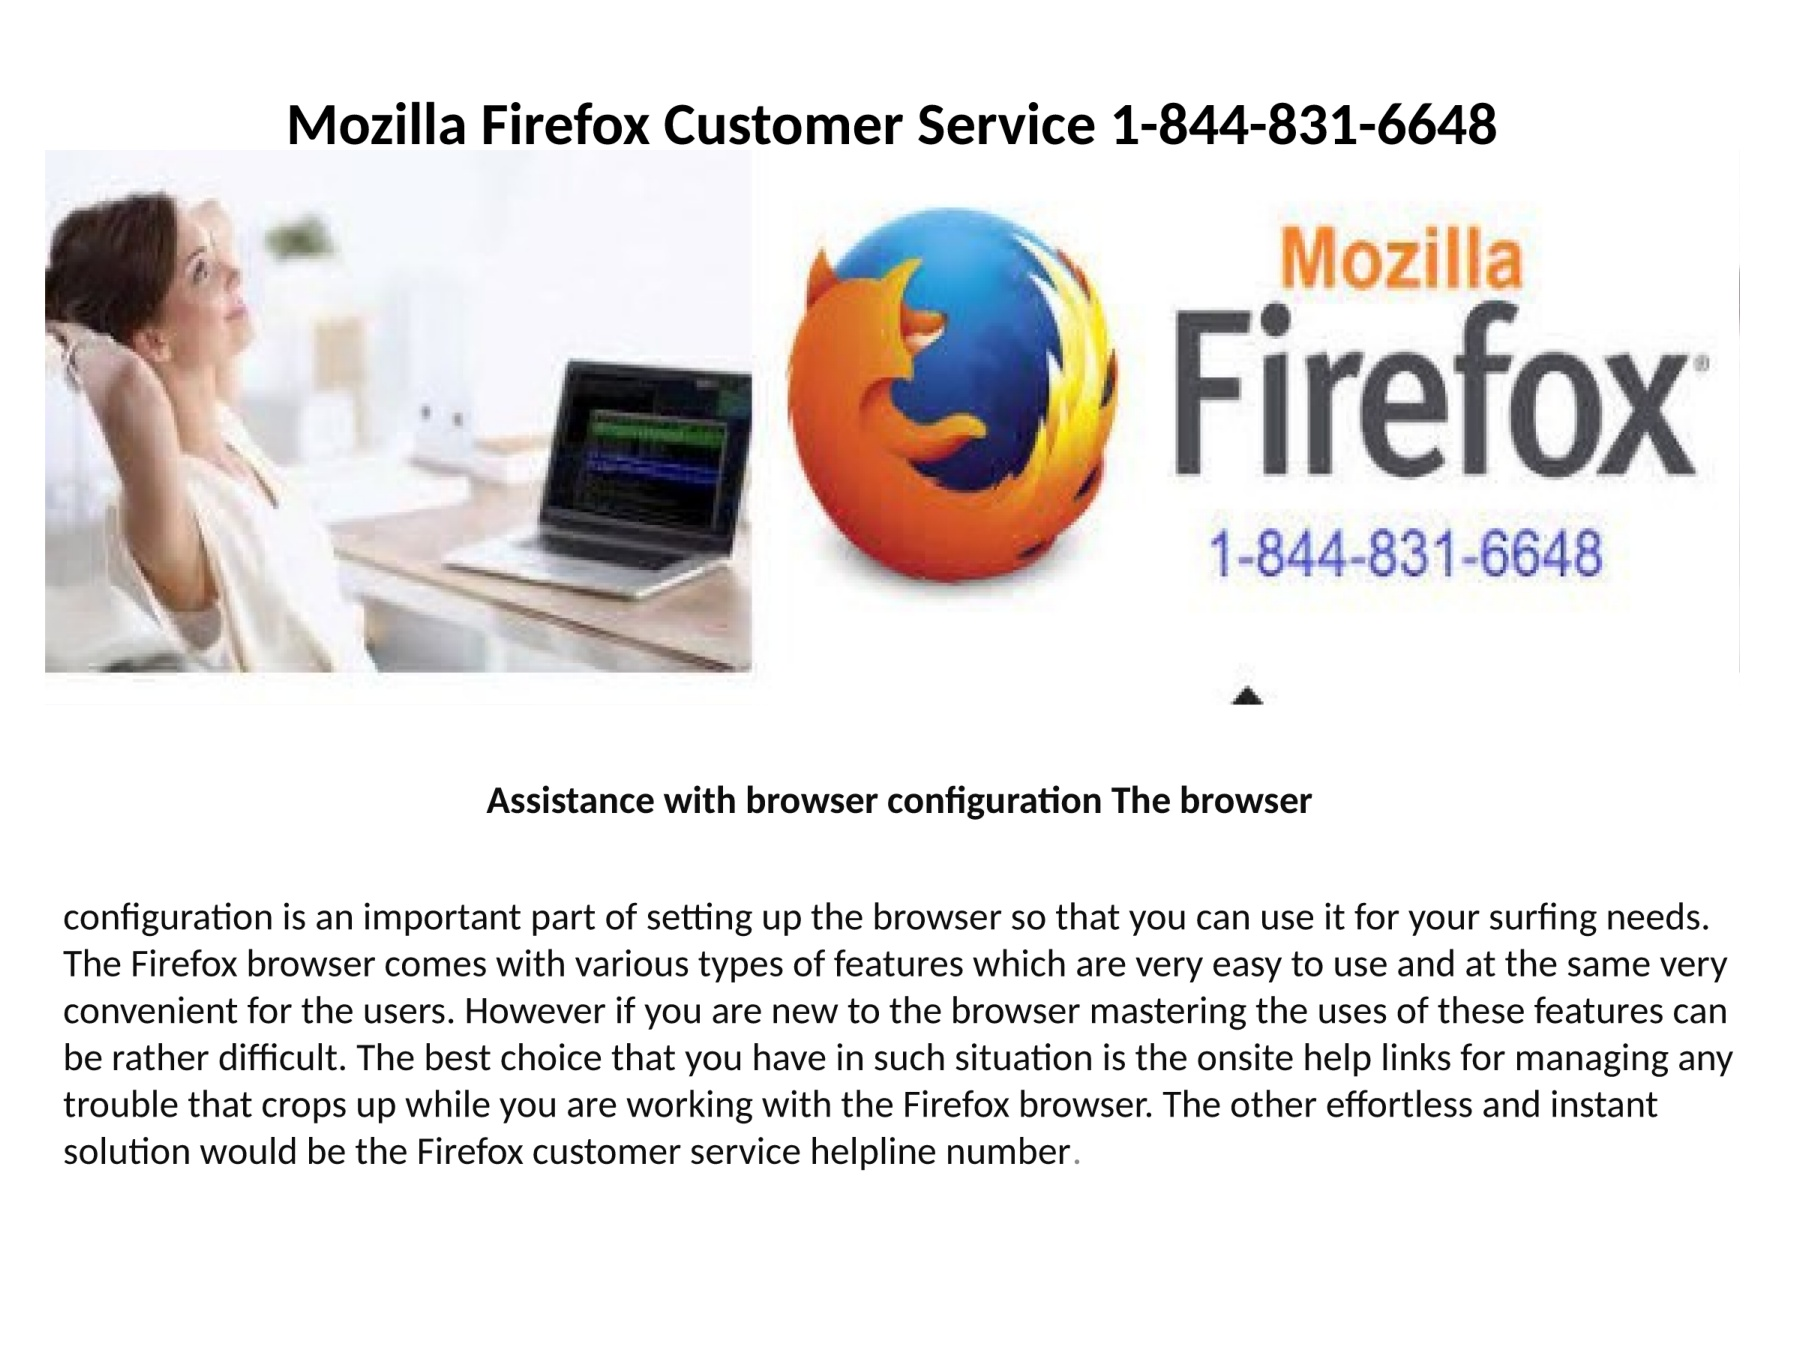 Mozilla Firefox tech support number 1-844-831-6648